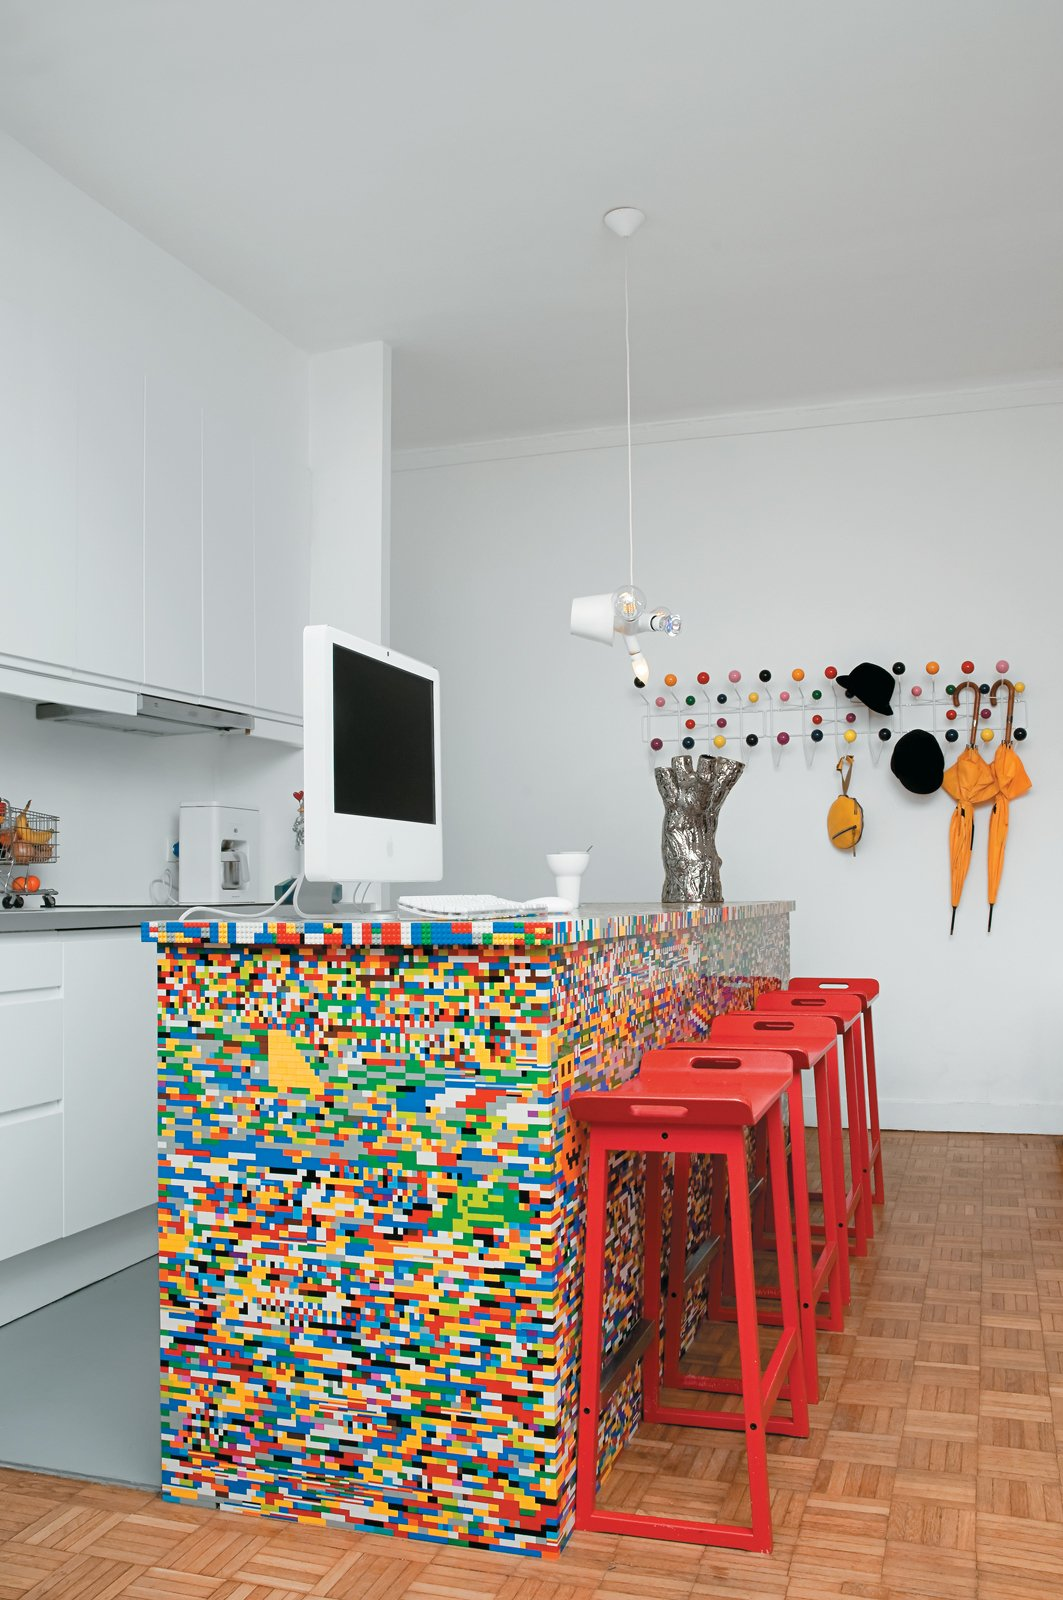 Kitchen and White Cabinet The idea for Simon Pillard and Philippe Rossetti's Lego kitchen in Paris sprouted five years ago, when Pillard put 500 blocks and a day's worth of work into building a Lego-legged chair. The designing duo—who create products together under the name Munchausen—recently gave the seat a colorful companion. They covered their kitchen island—a simple wooden block—with 20,000 Lego pieces.  Photo by Céline Clanet  Fantastic Modern Kitchen Islands by Brandi Andres from Lego Island